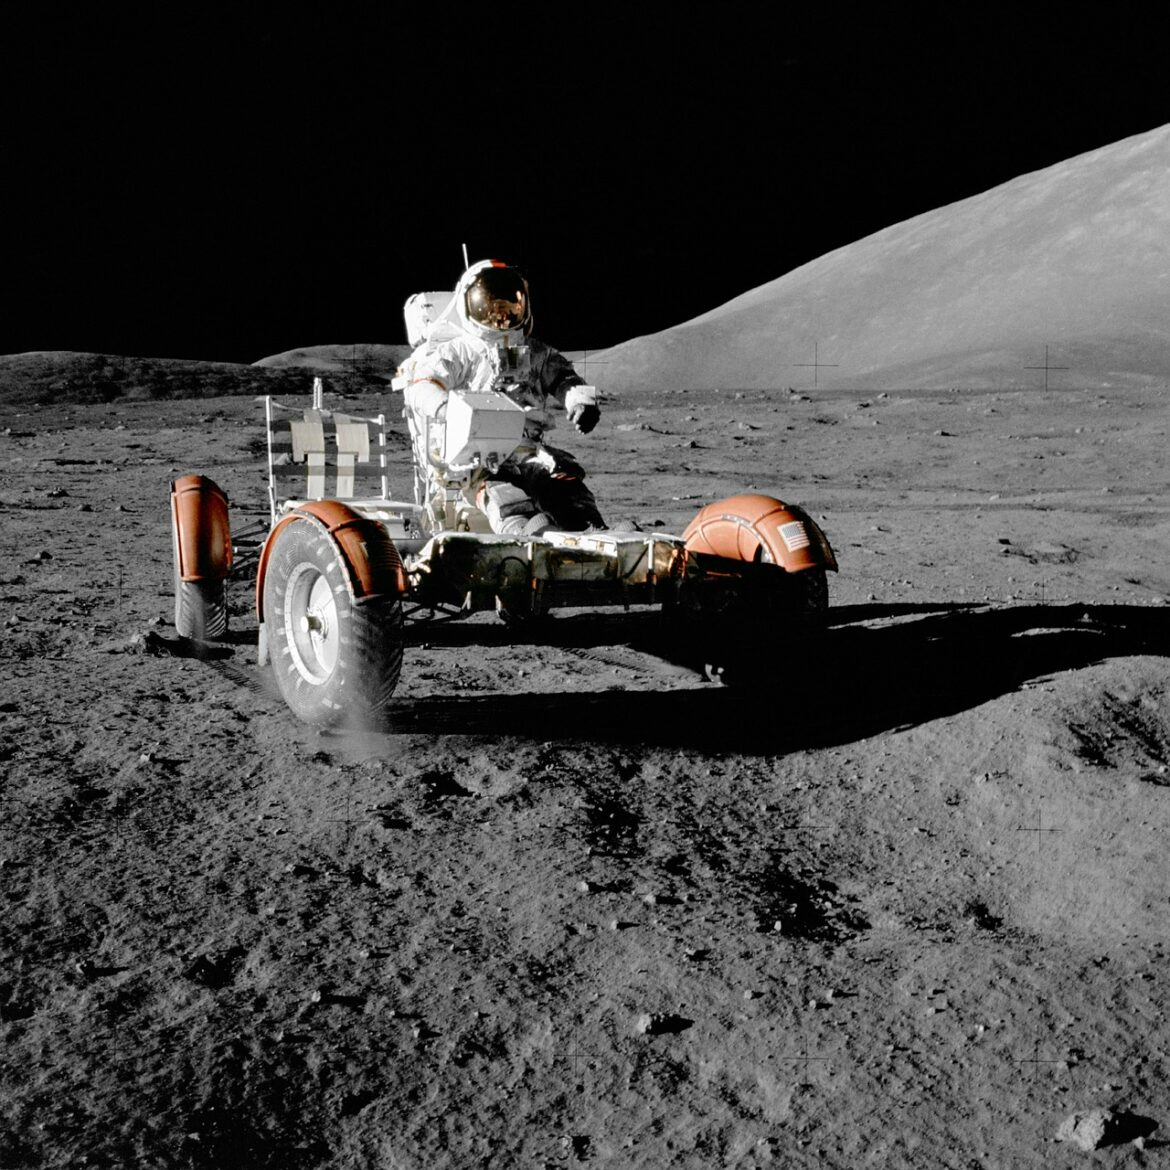 moon-vehicle-67521_1280